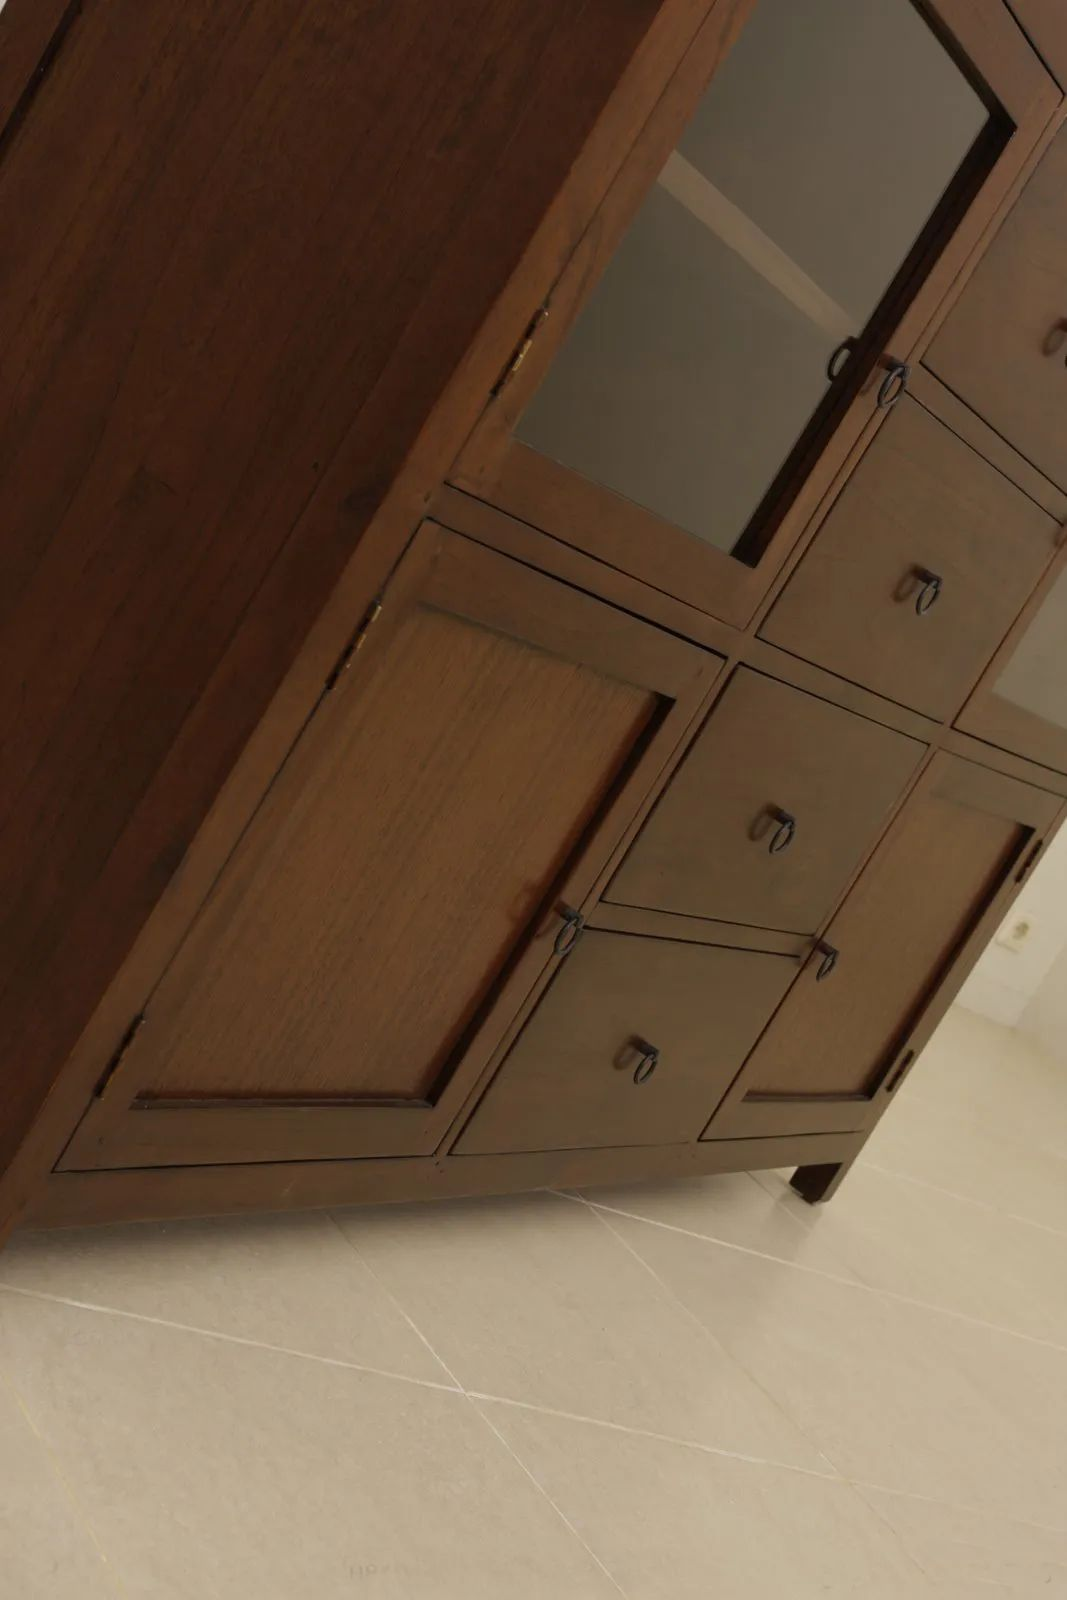 Ring plate drawers pulls and door handles